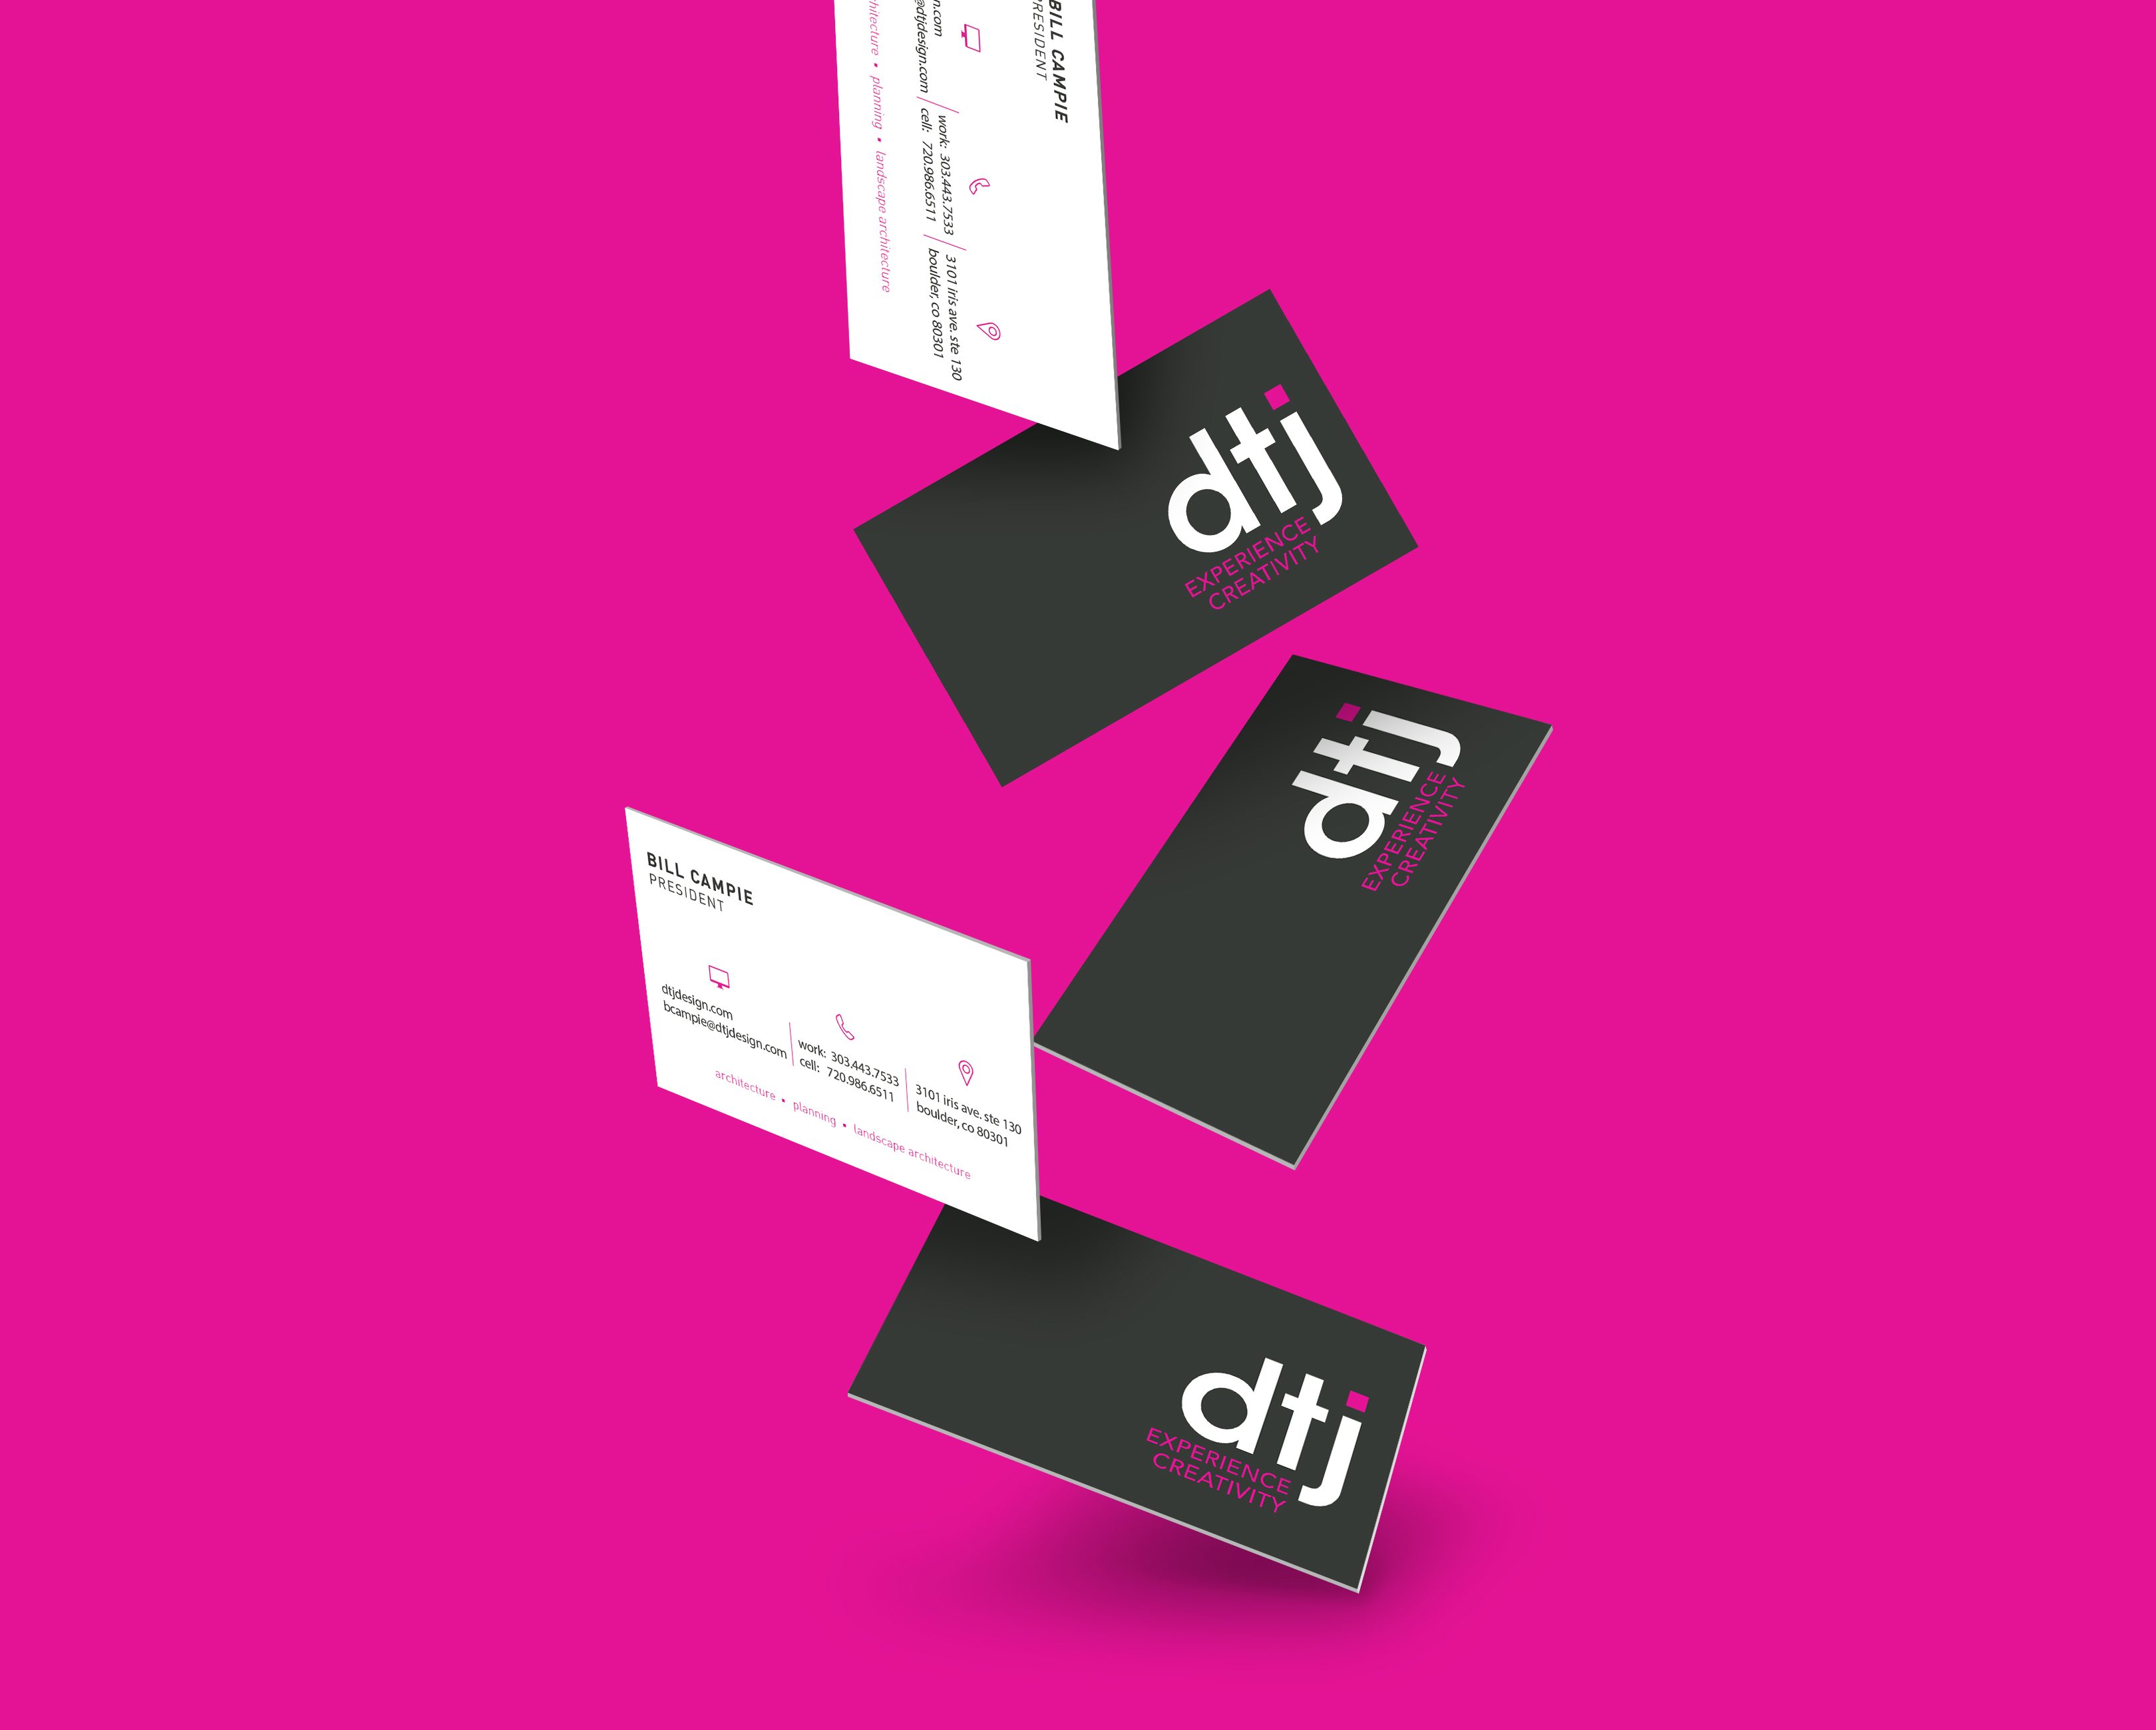 print design project, business cards